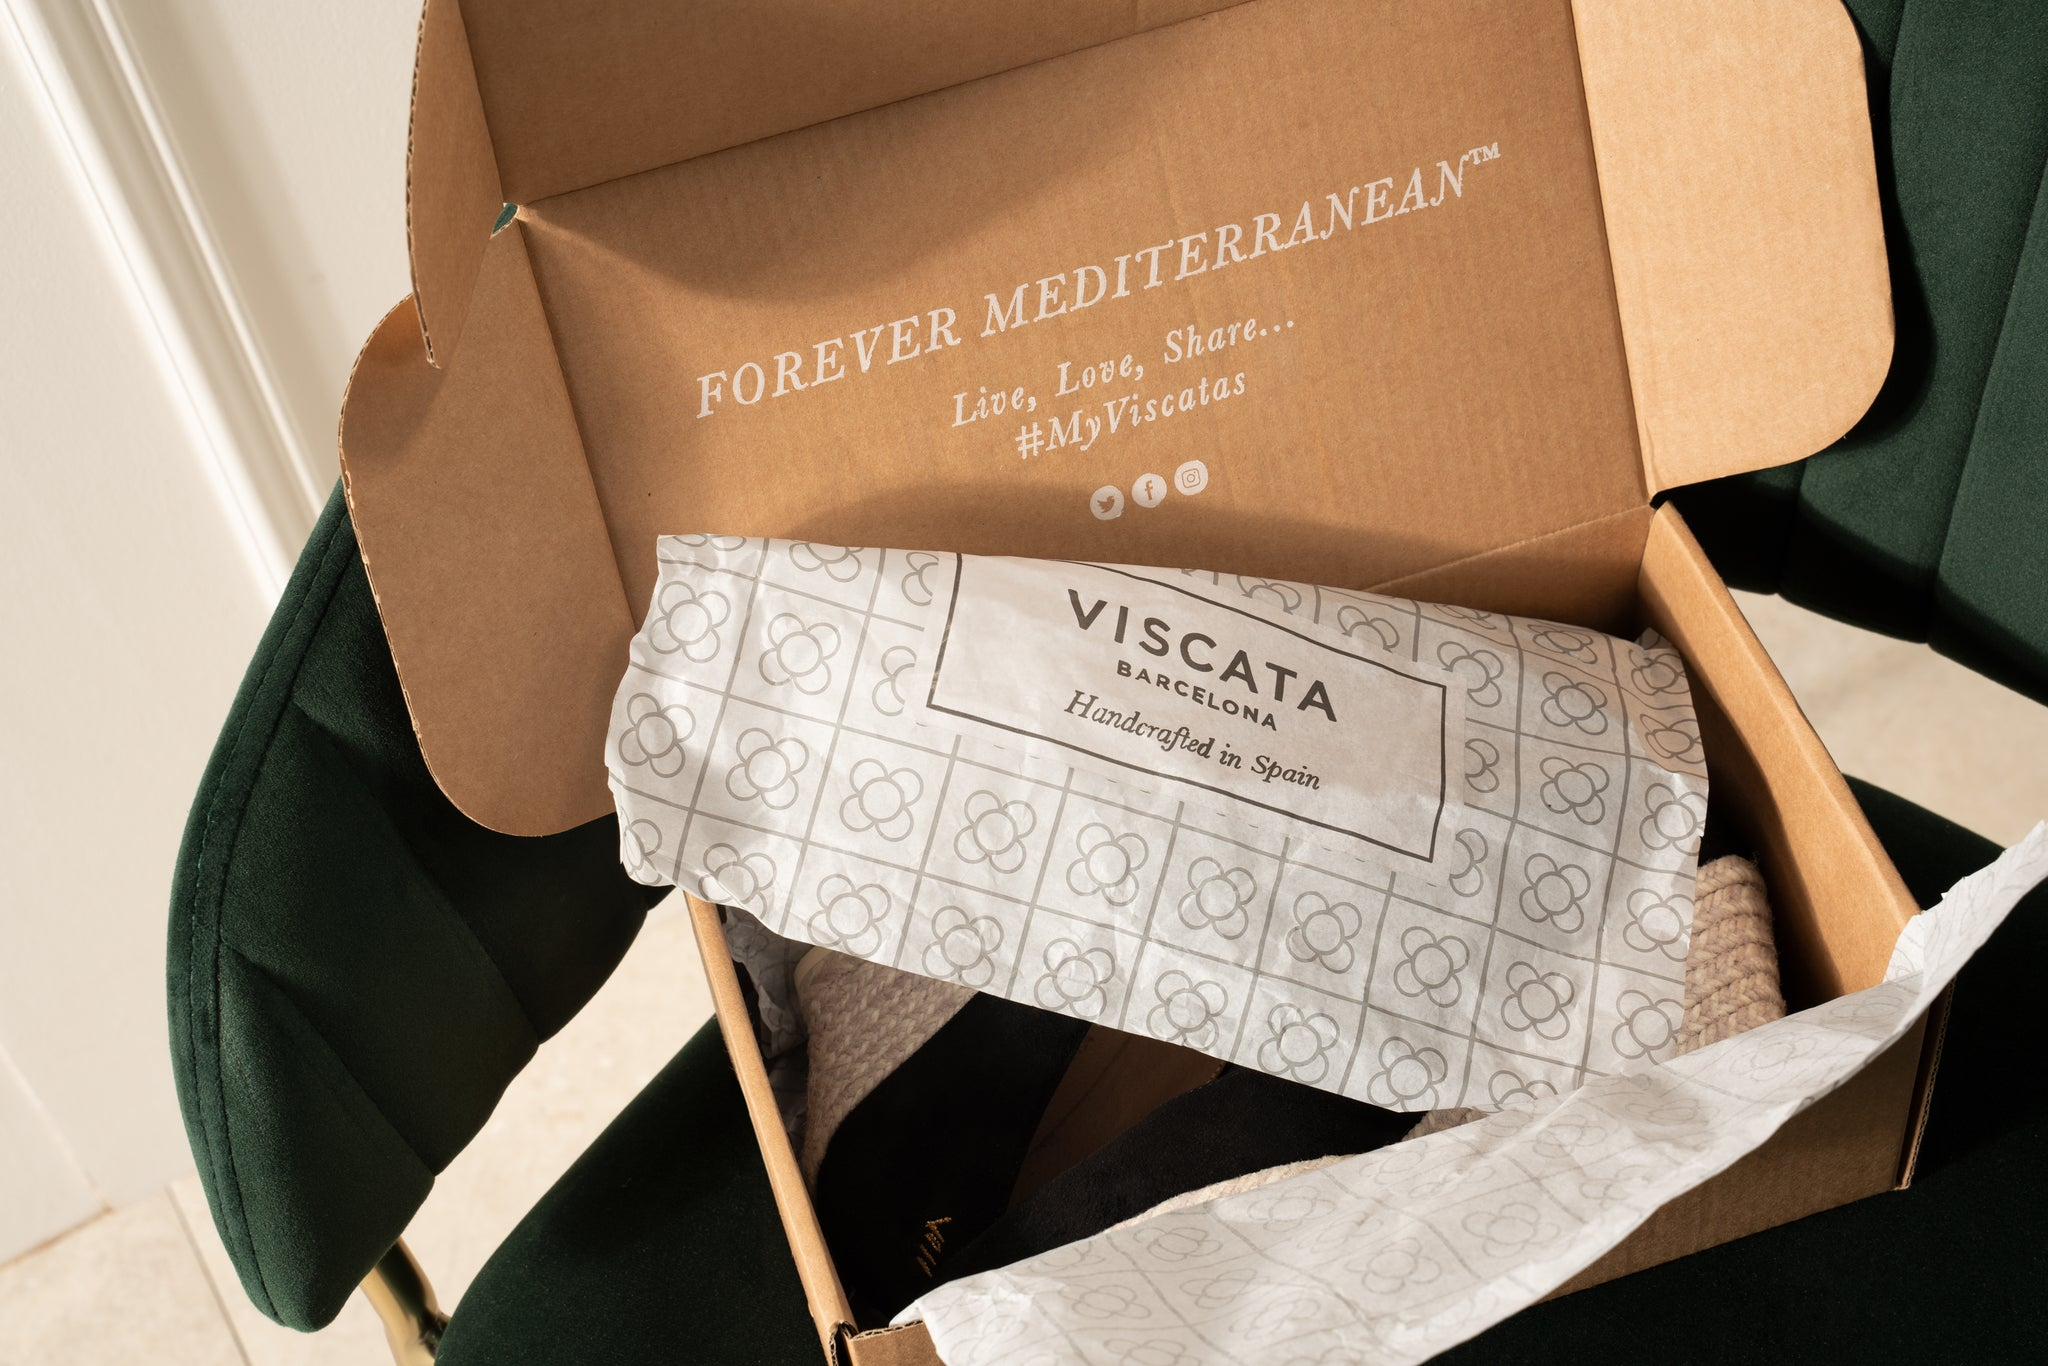 Viscata's Eco-Friendly Shoes. Eco-friendly packaging.